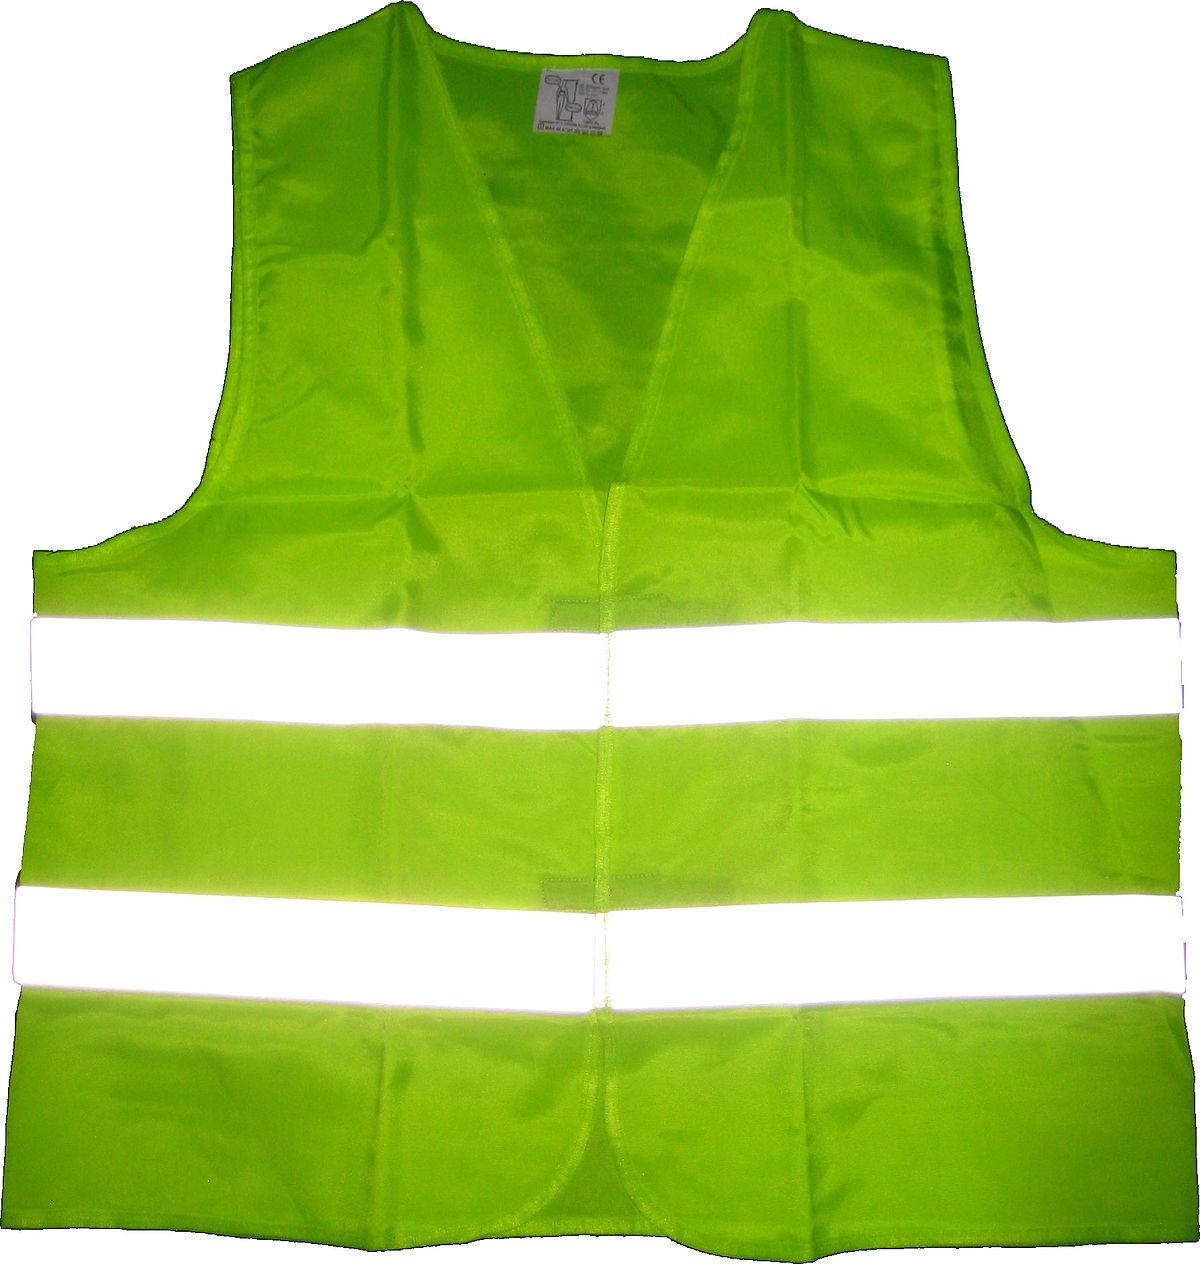 highvisibility clothing wikipedia